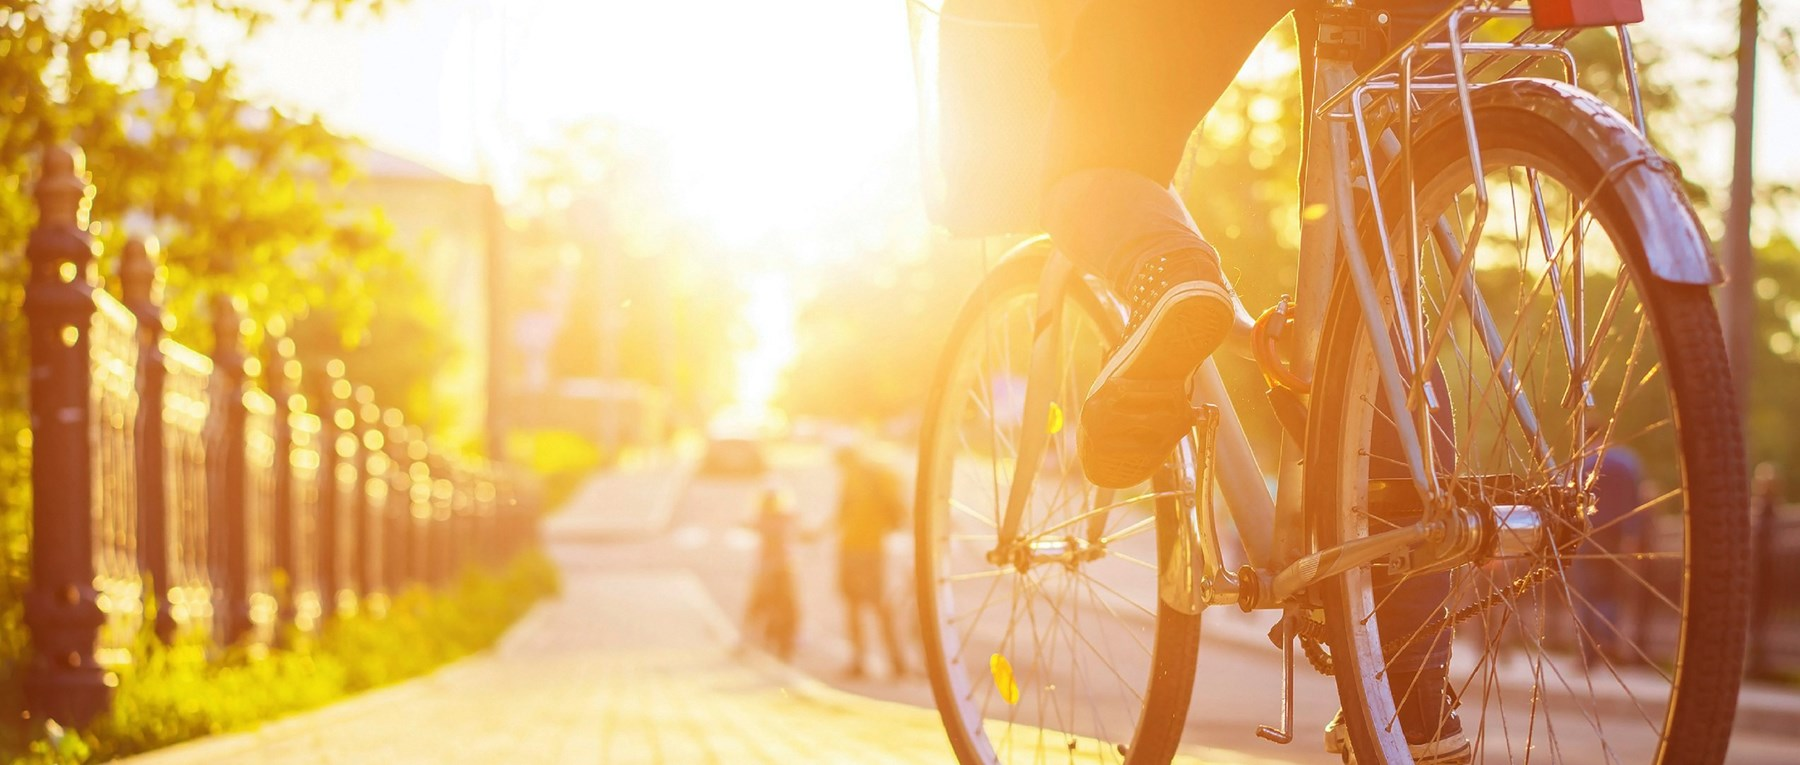 Bicycle in the sunshine